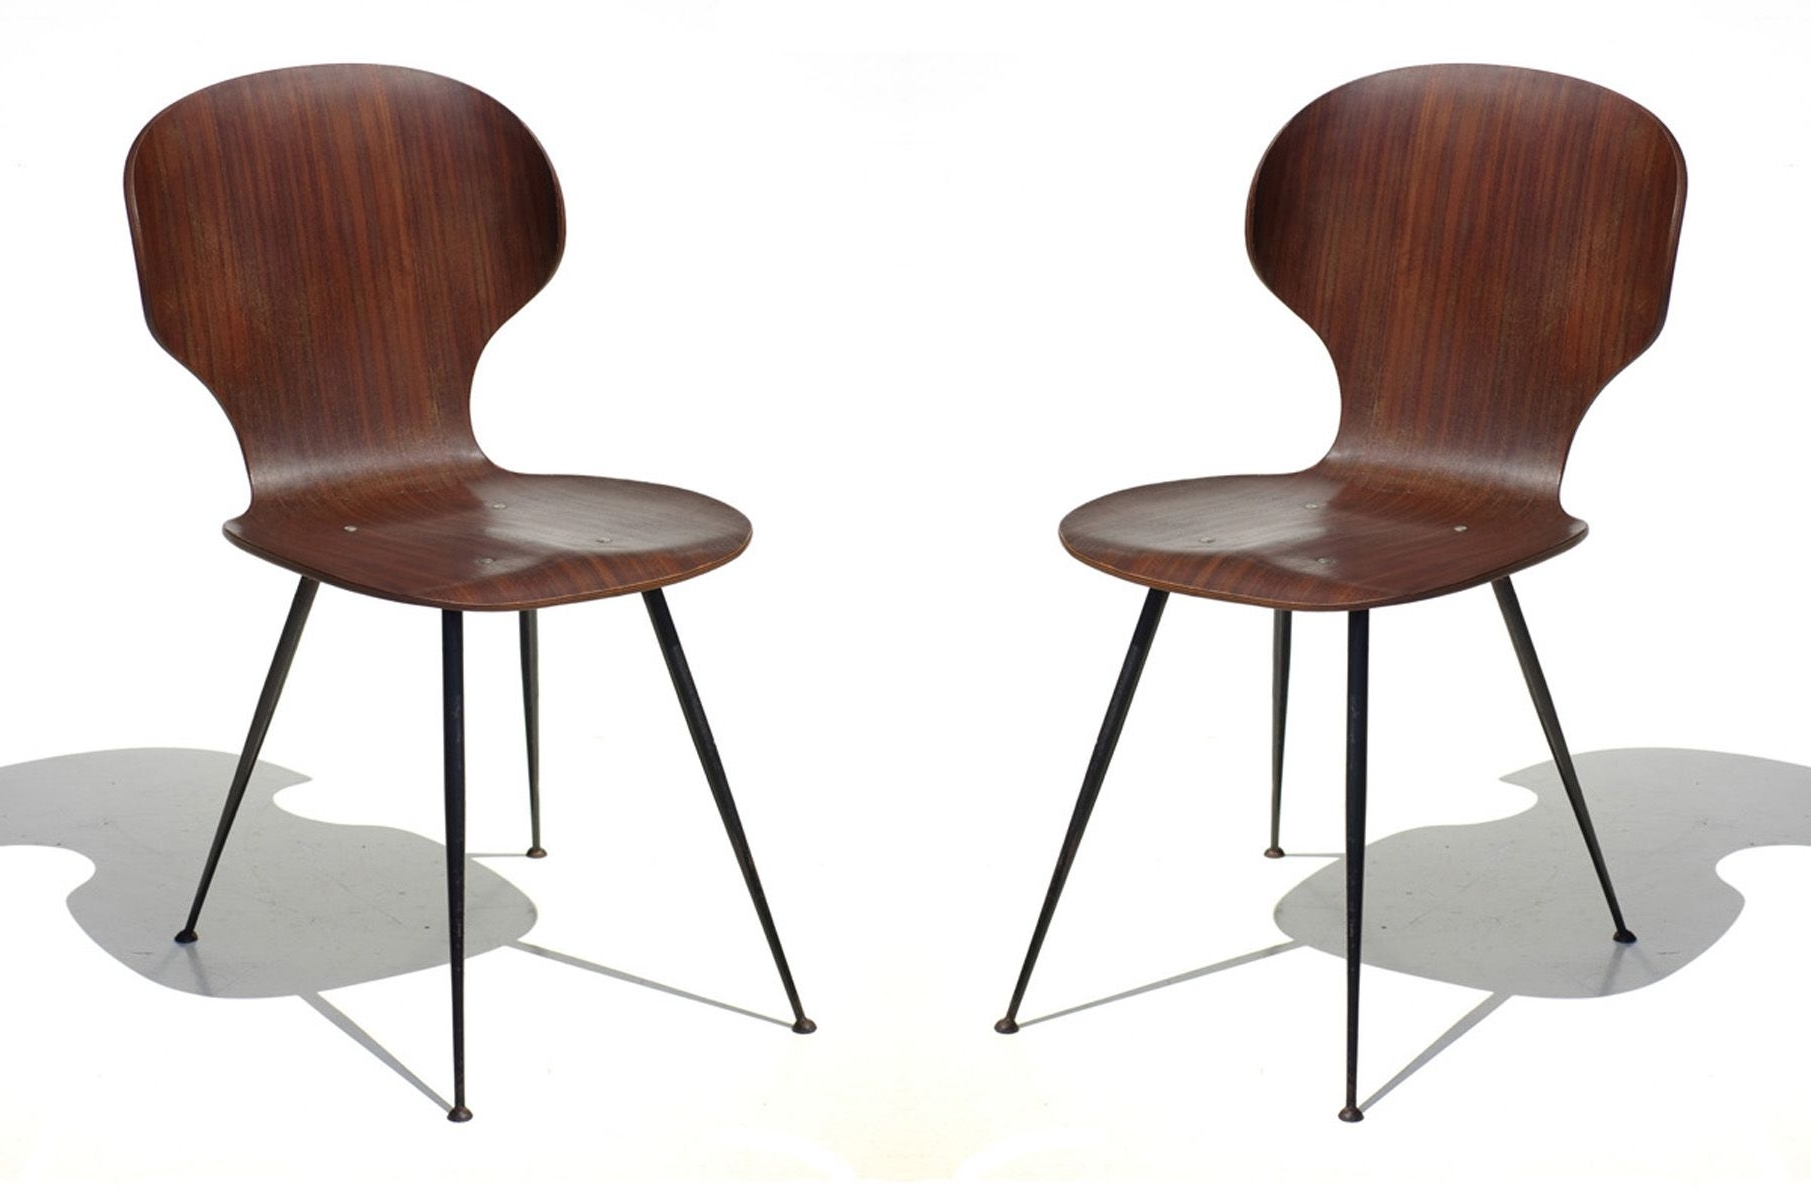 Plywood & Metal Brown Dining Chairs Within Well Known Mid Century Plywood & Metal Dining Chairscarlo Ratti For Lissoni (View 16 of 20)